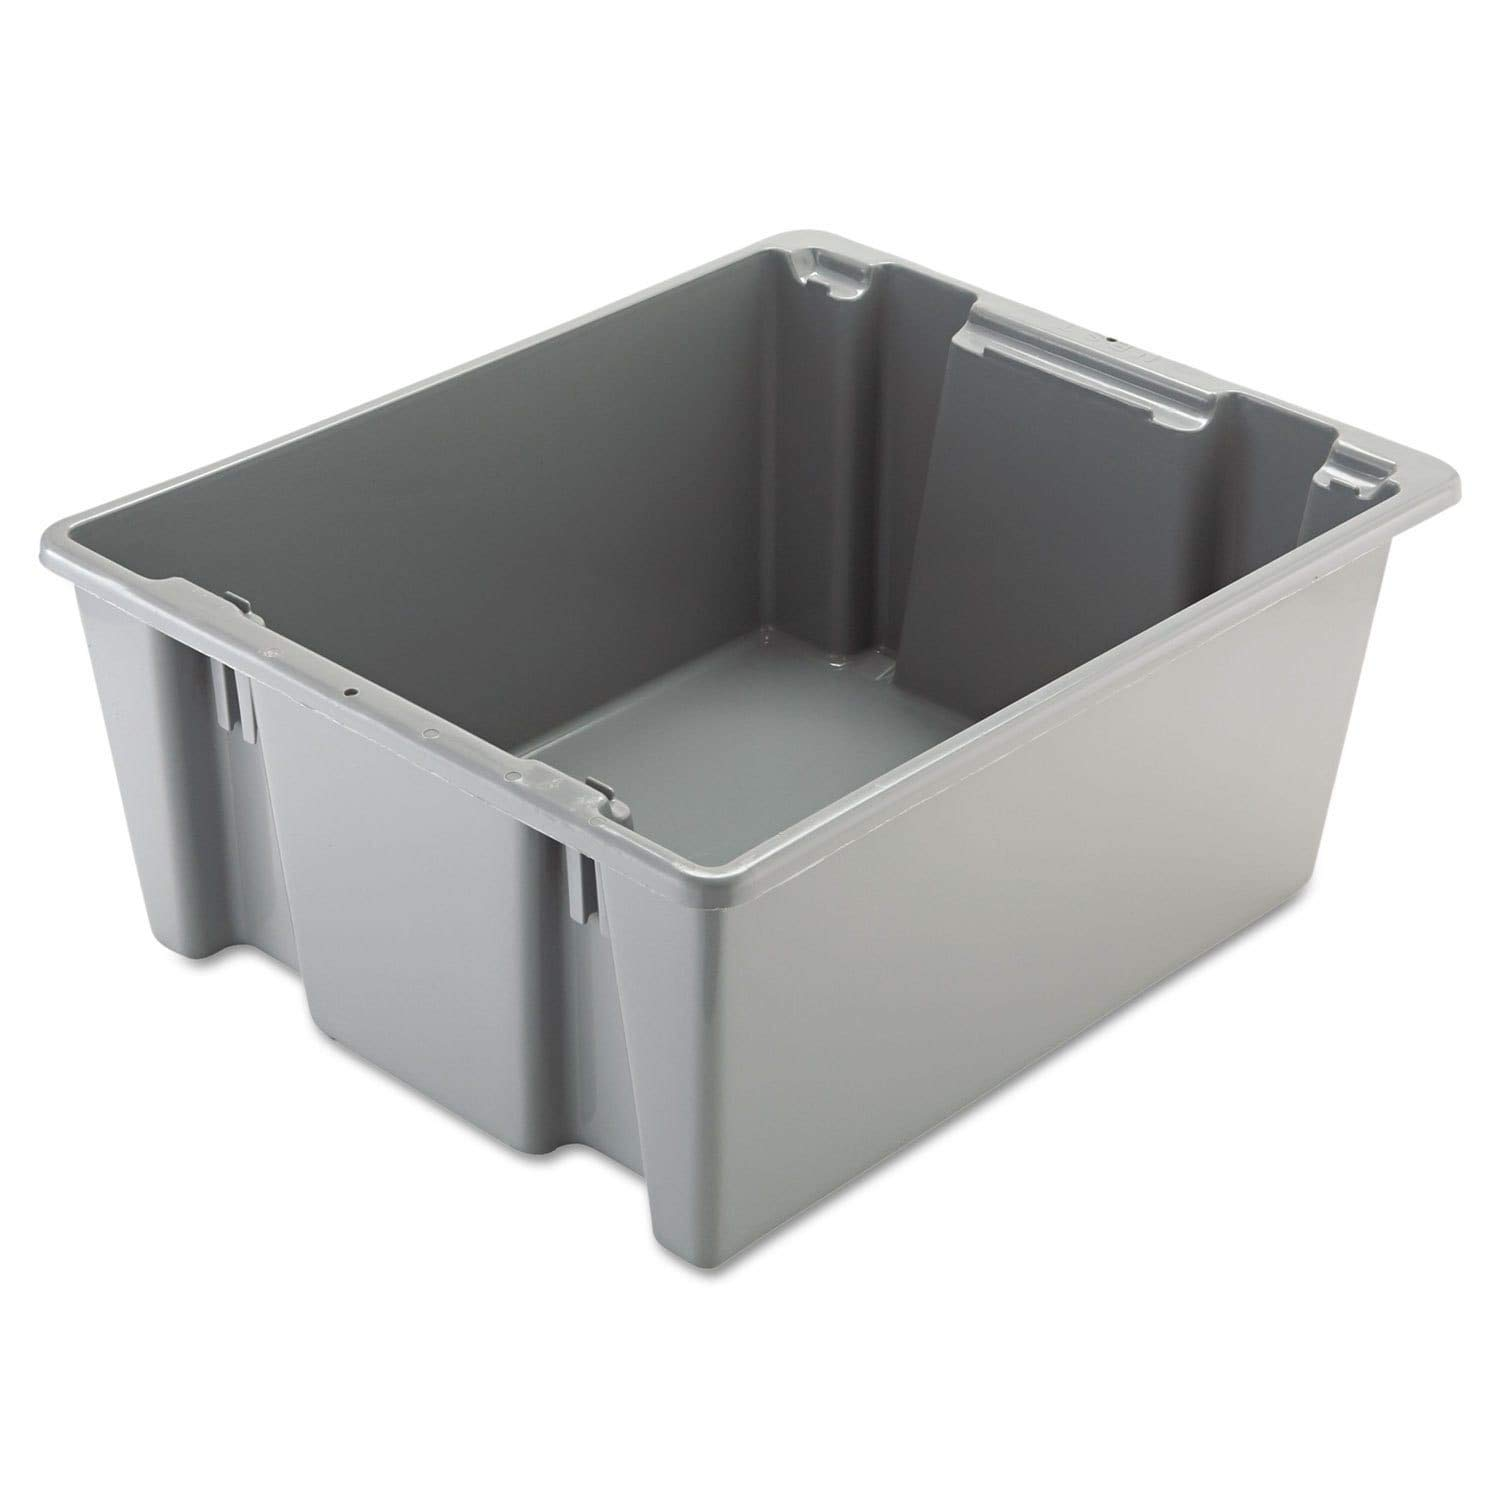 Rubbermaid Commercial Palletote Storage Box, 2 Cu. Ft, Gray, FG173100GRAY